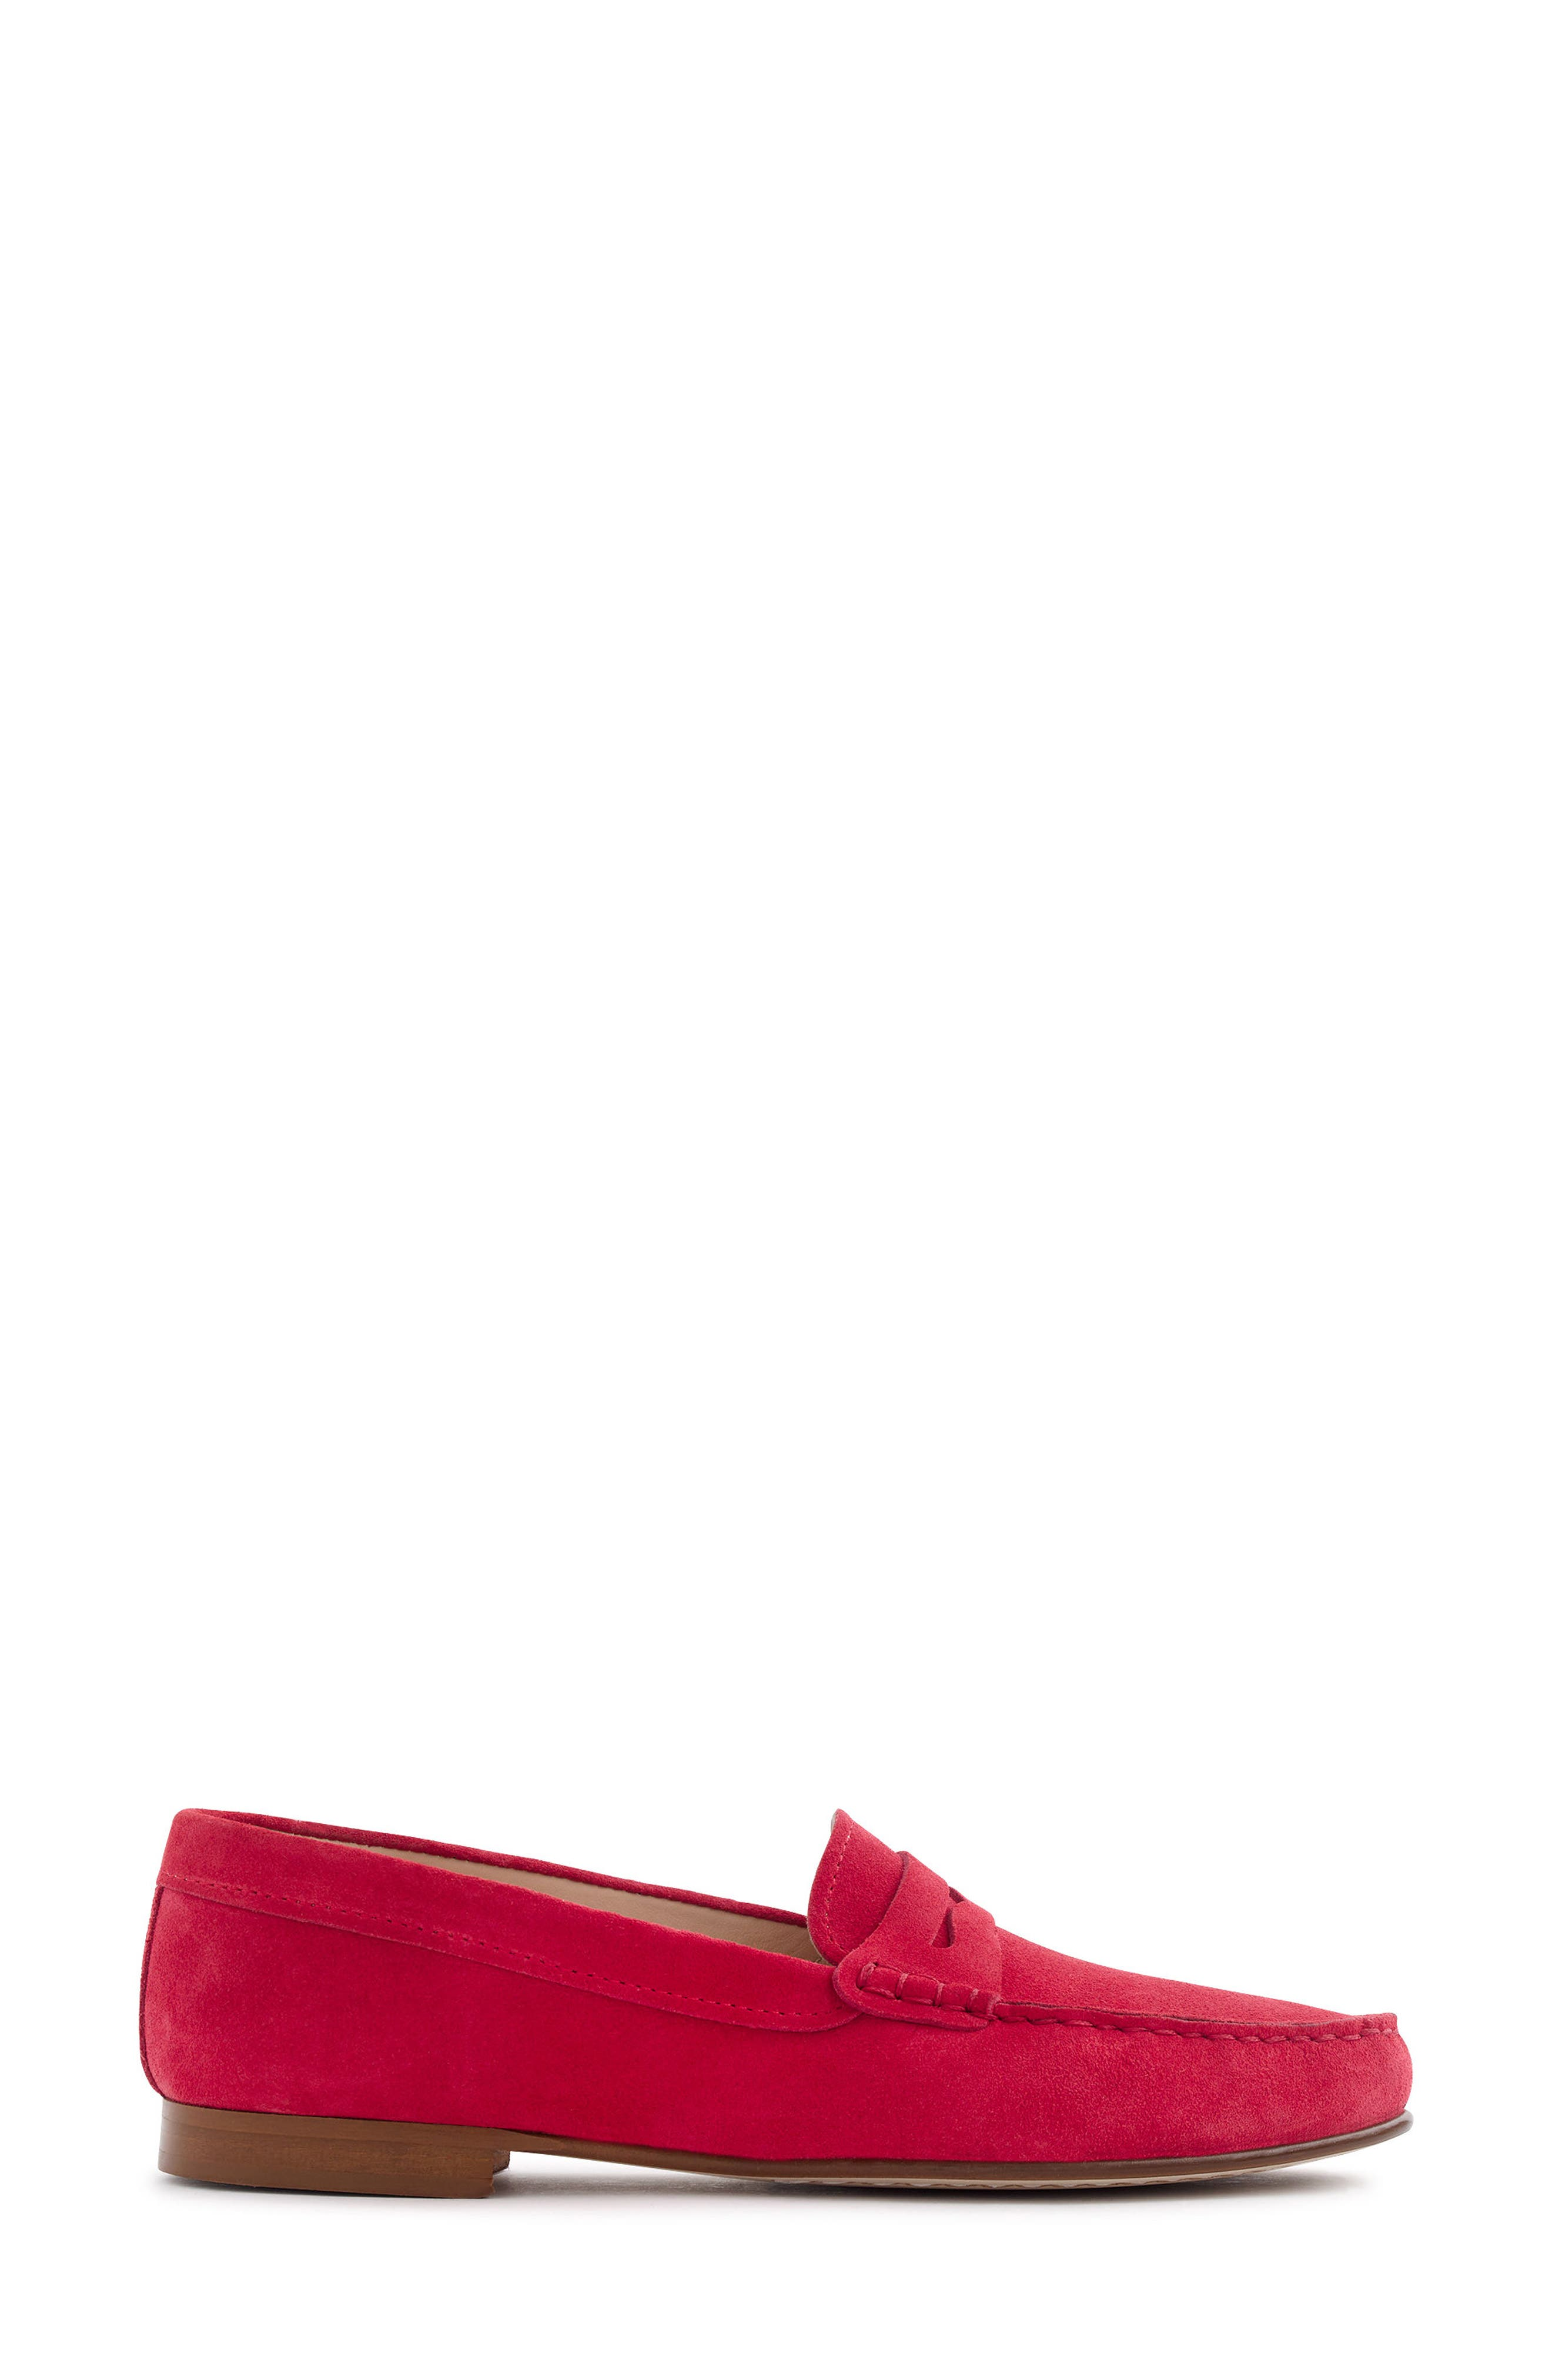 Alternate Image 2  - J. Crew Felix Loafer (Women)